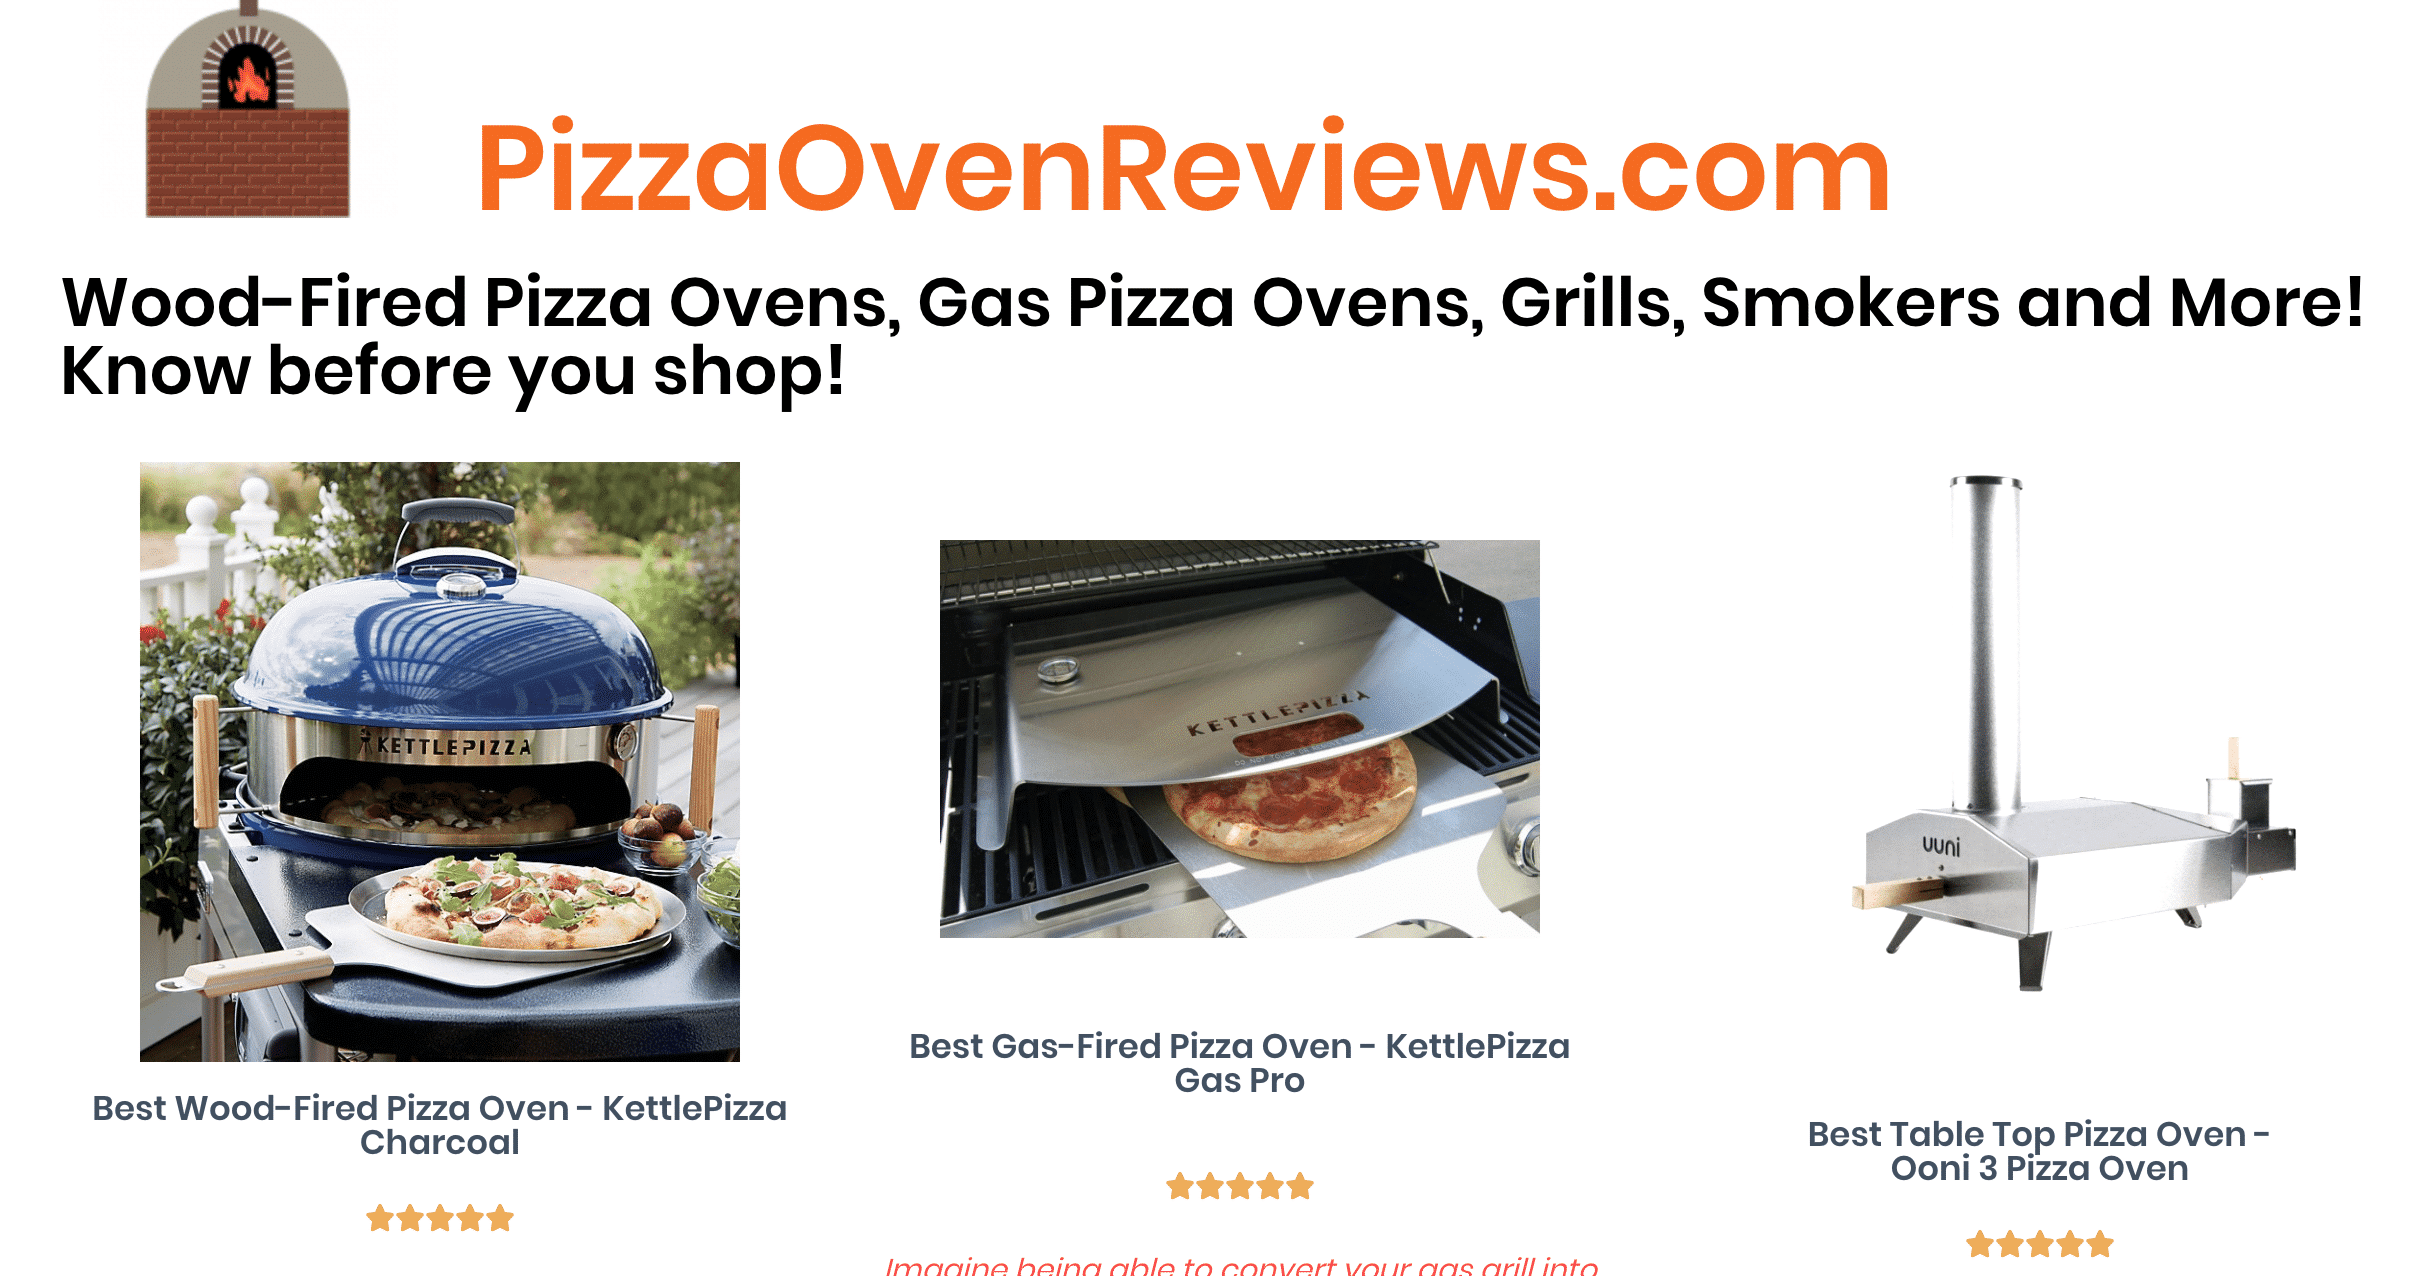 PizzaOvenReviews.com